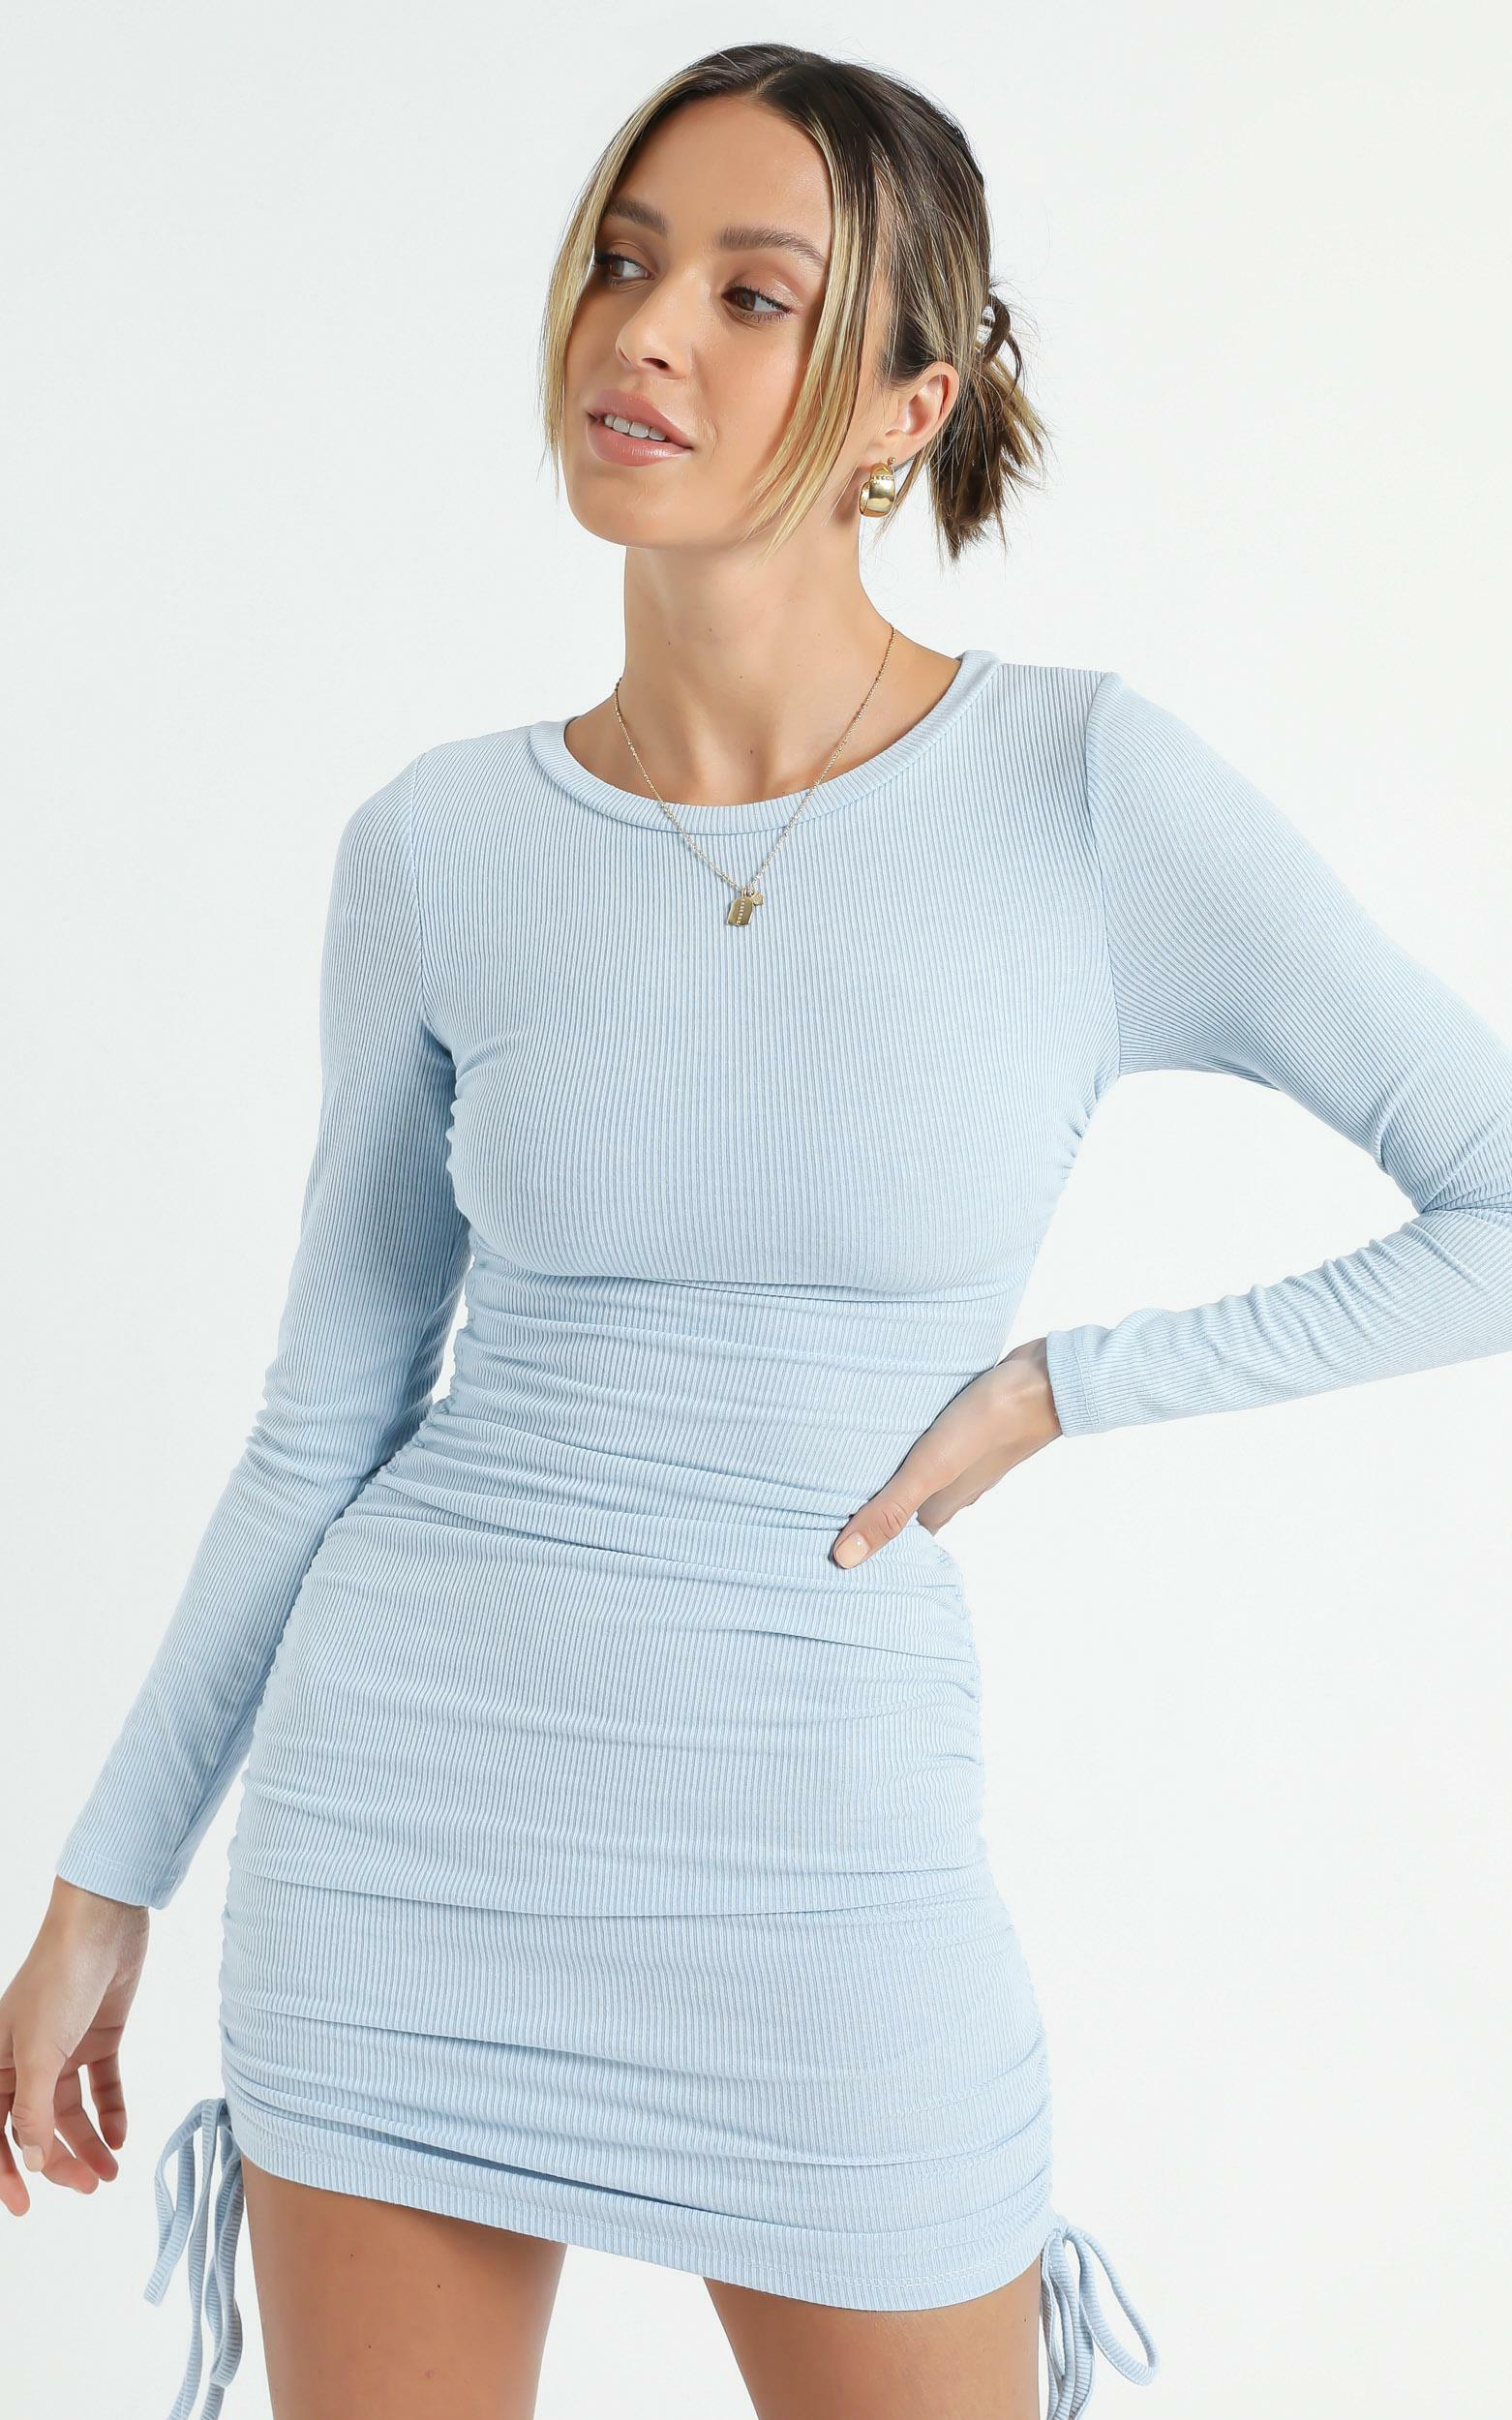 Whitmore Dress in Blue - 14 (XL), Blue, hi-res image number null